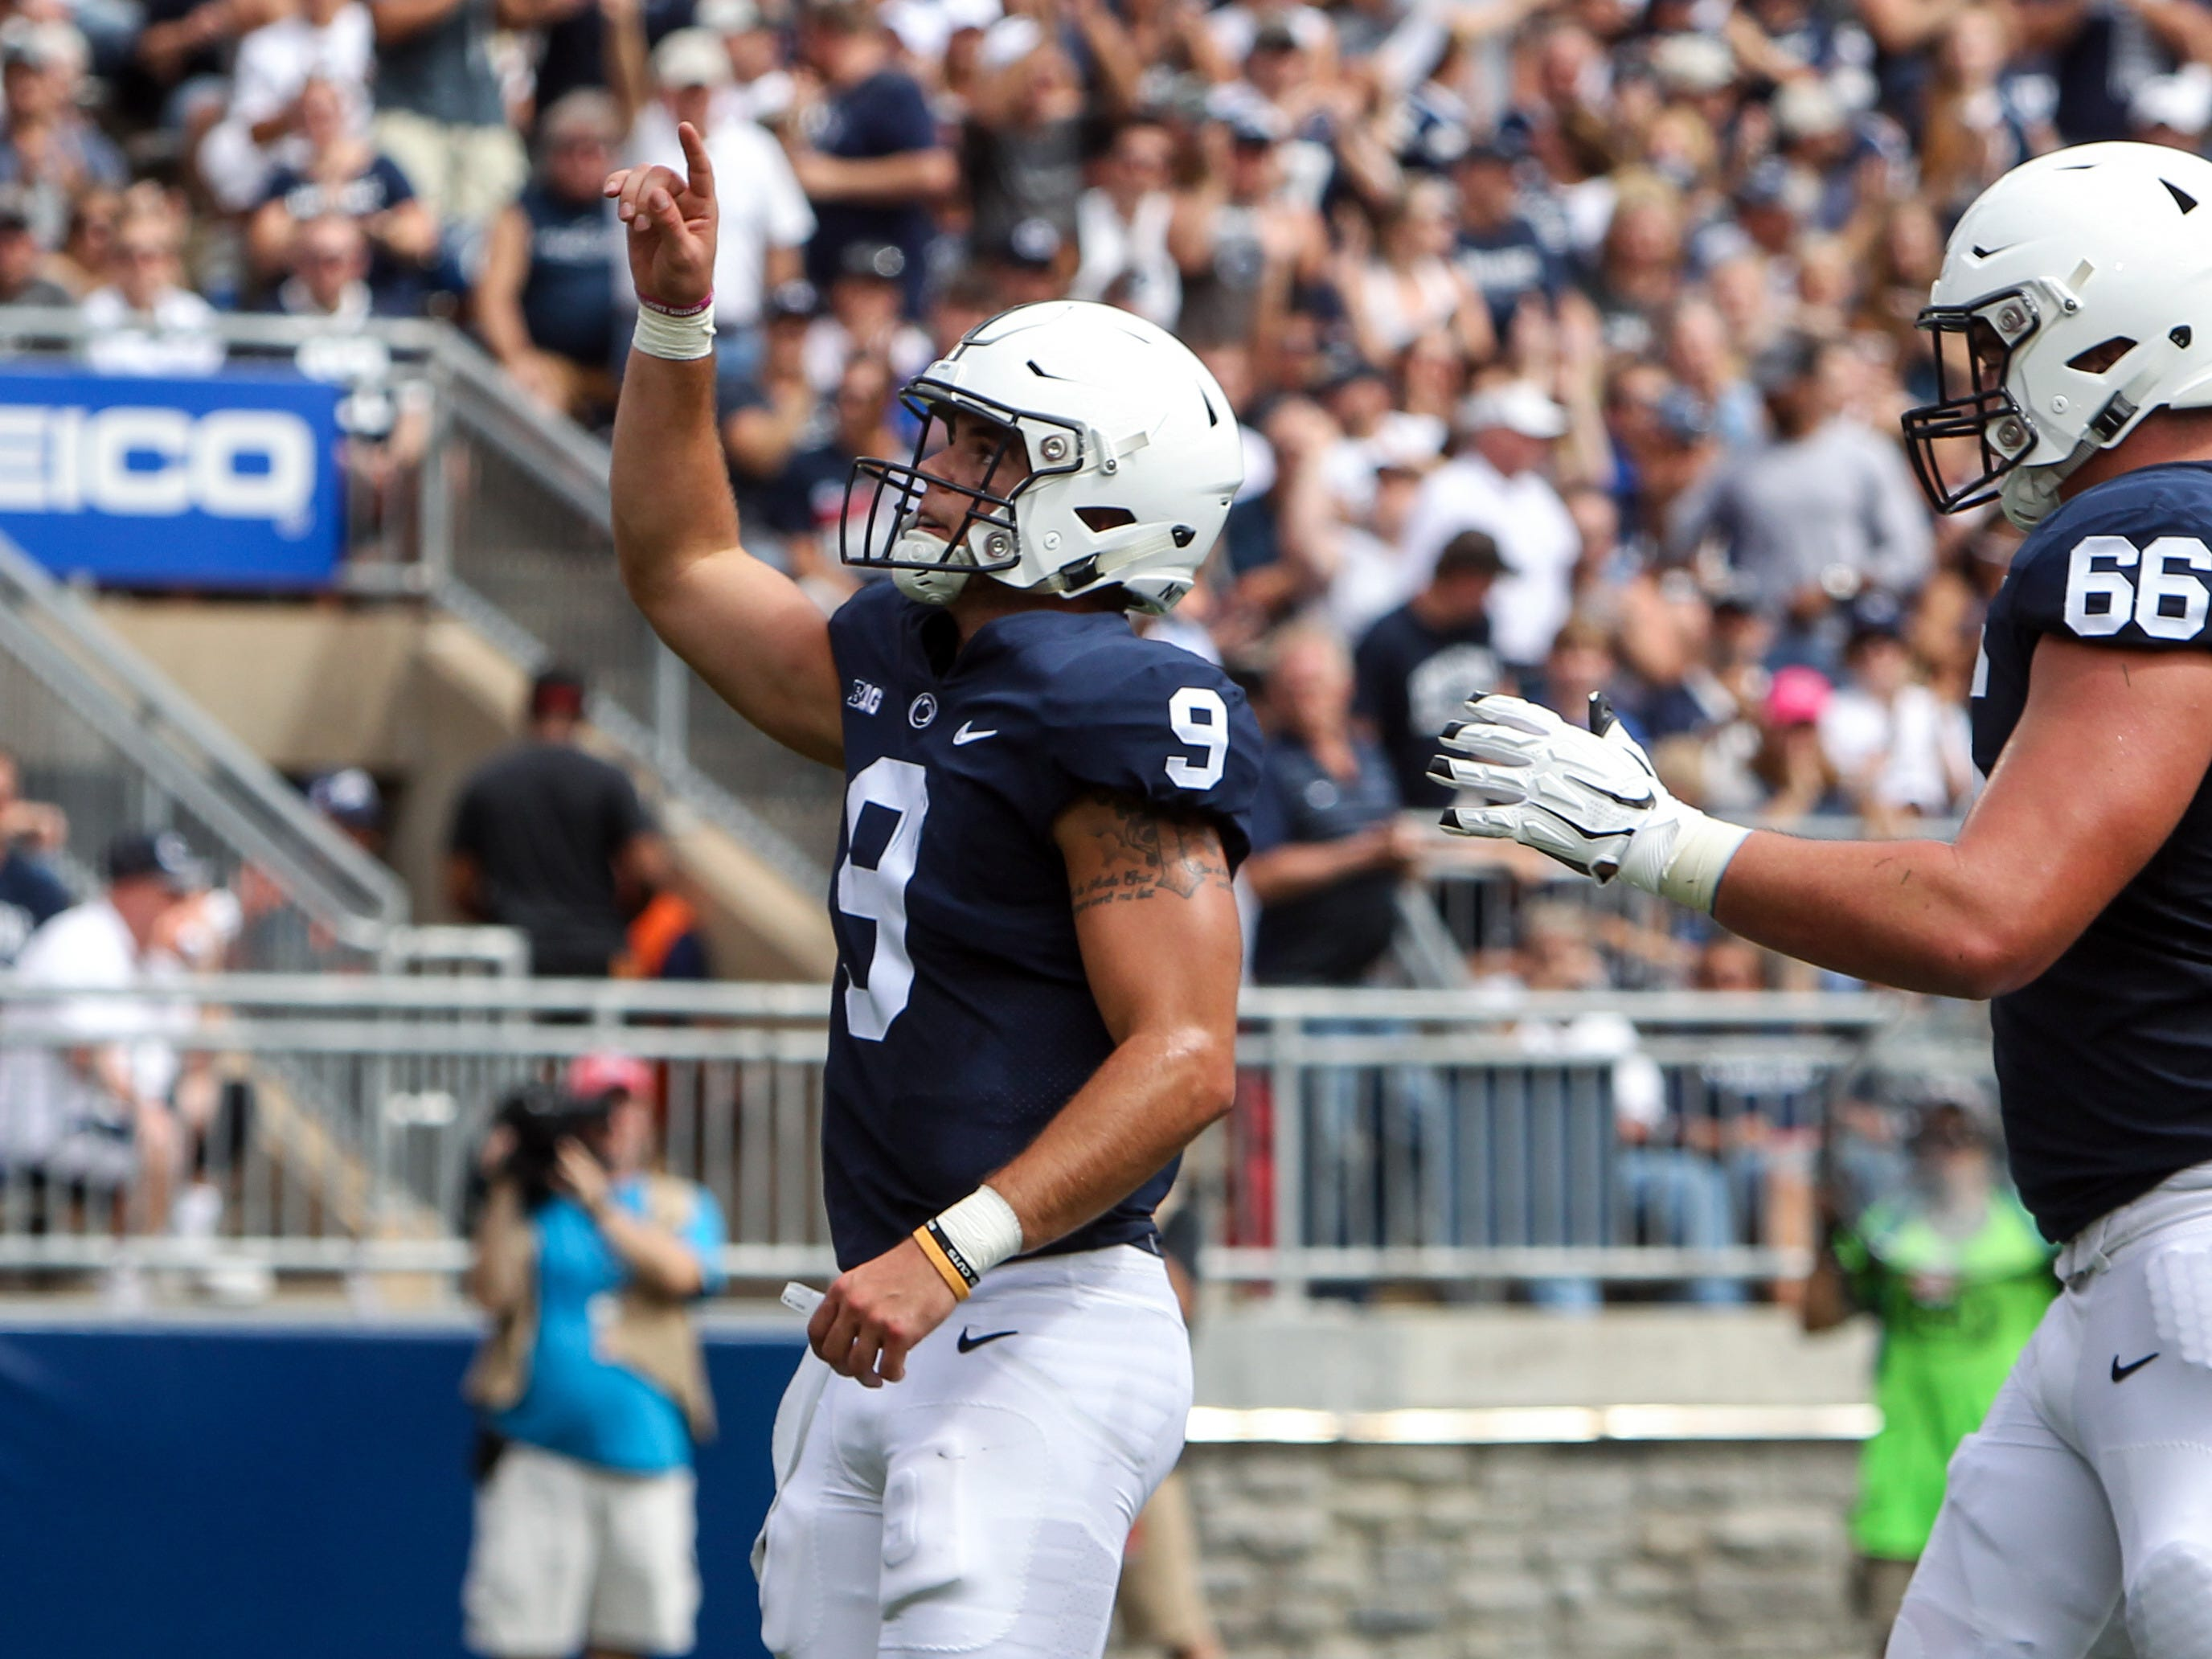 Penn State Nittany Lions quarterback Trace McSorley (9) scores a touchdown during the first quarter against the Kent State Golden Flashes at Beaver Stadium.